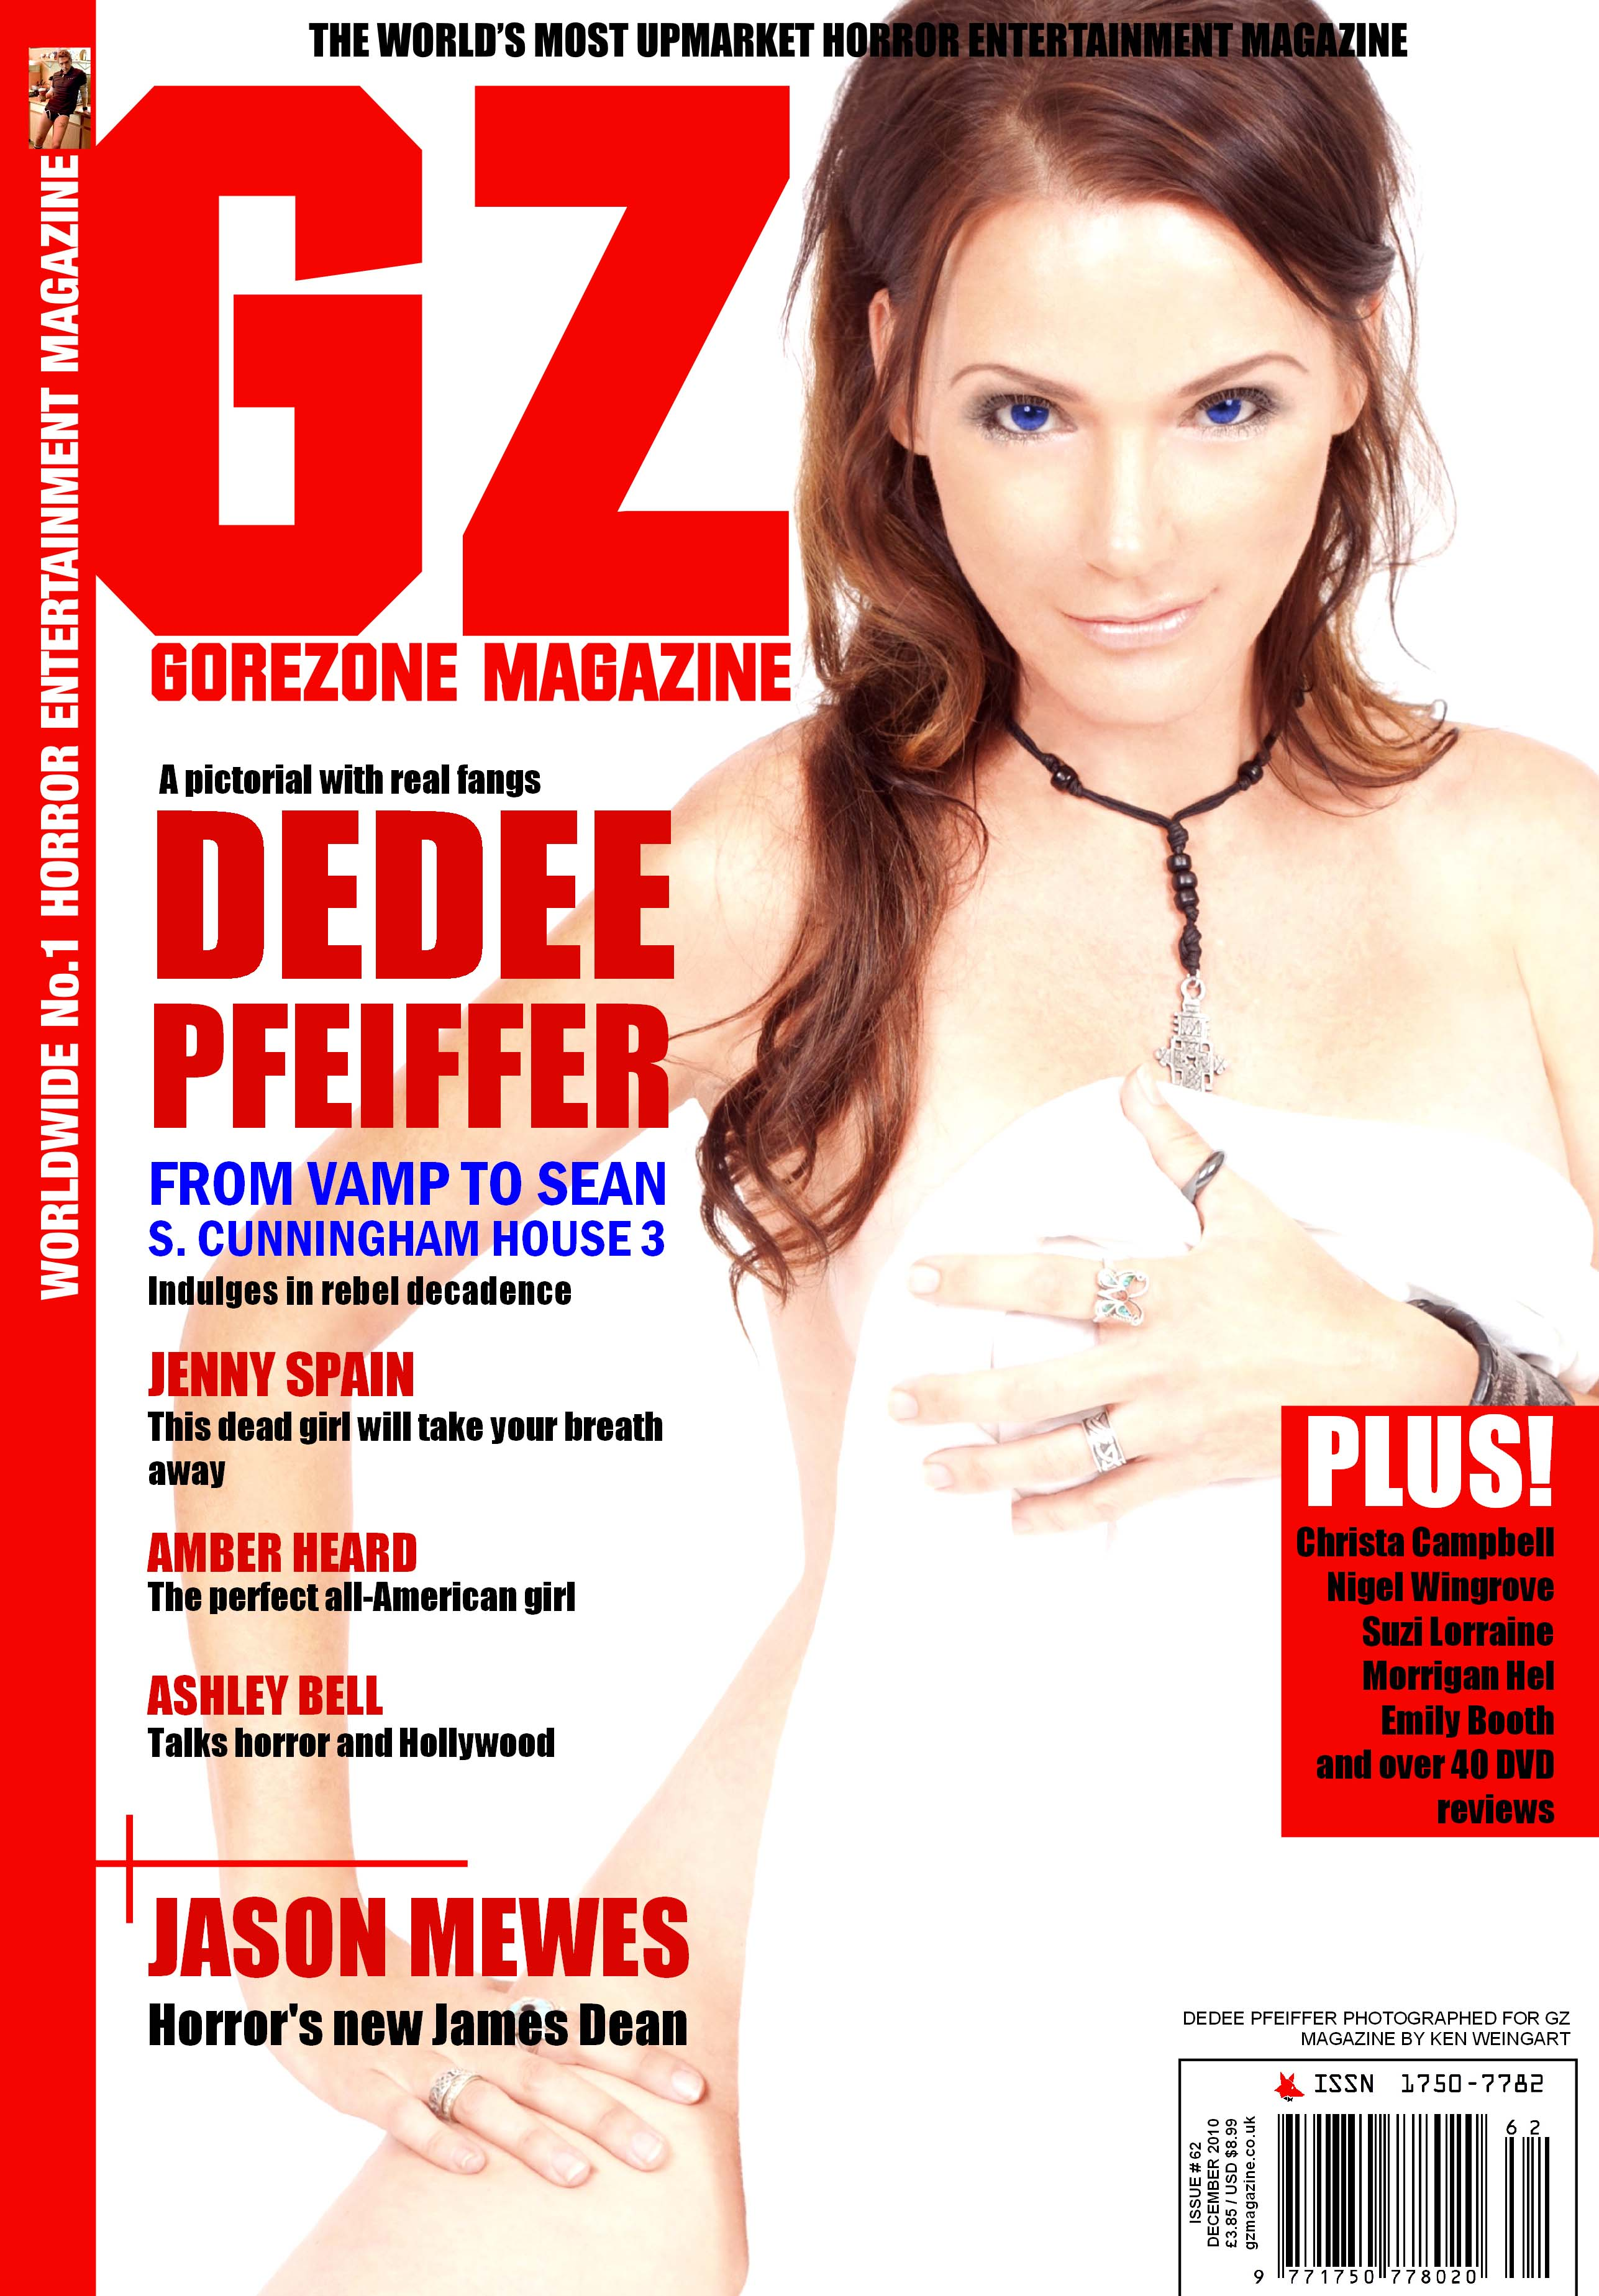 Gorezone Magazine - DeeDee Pfeiffer Credit